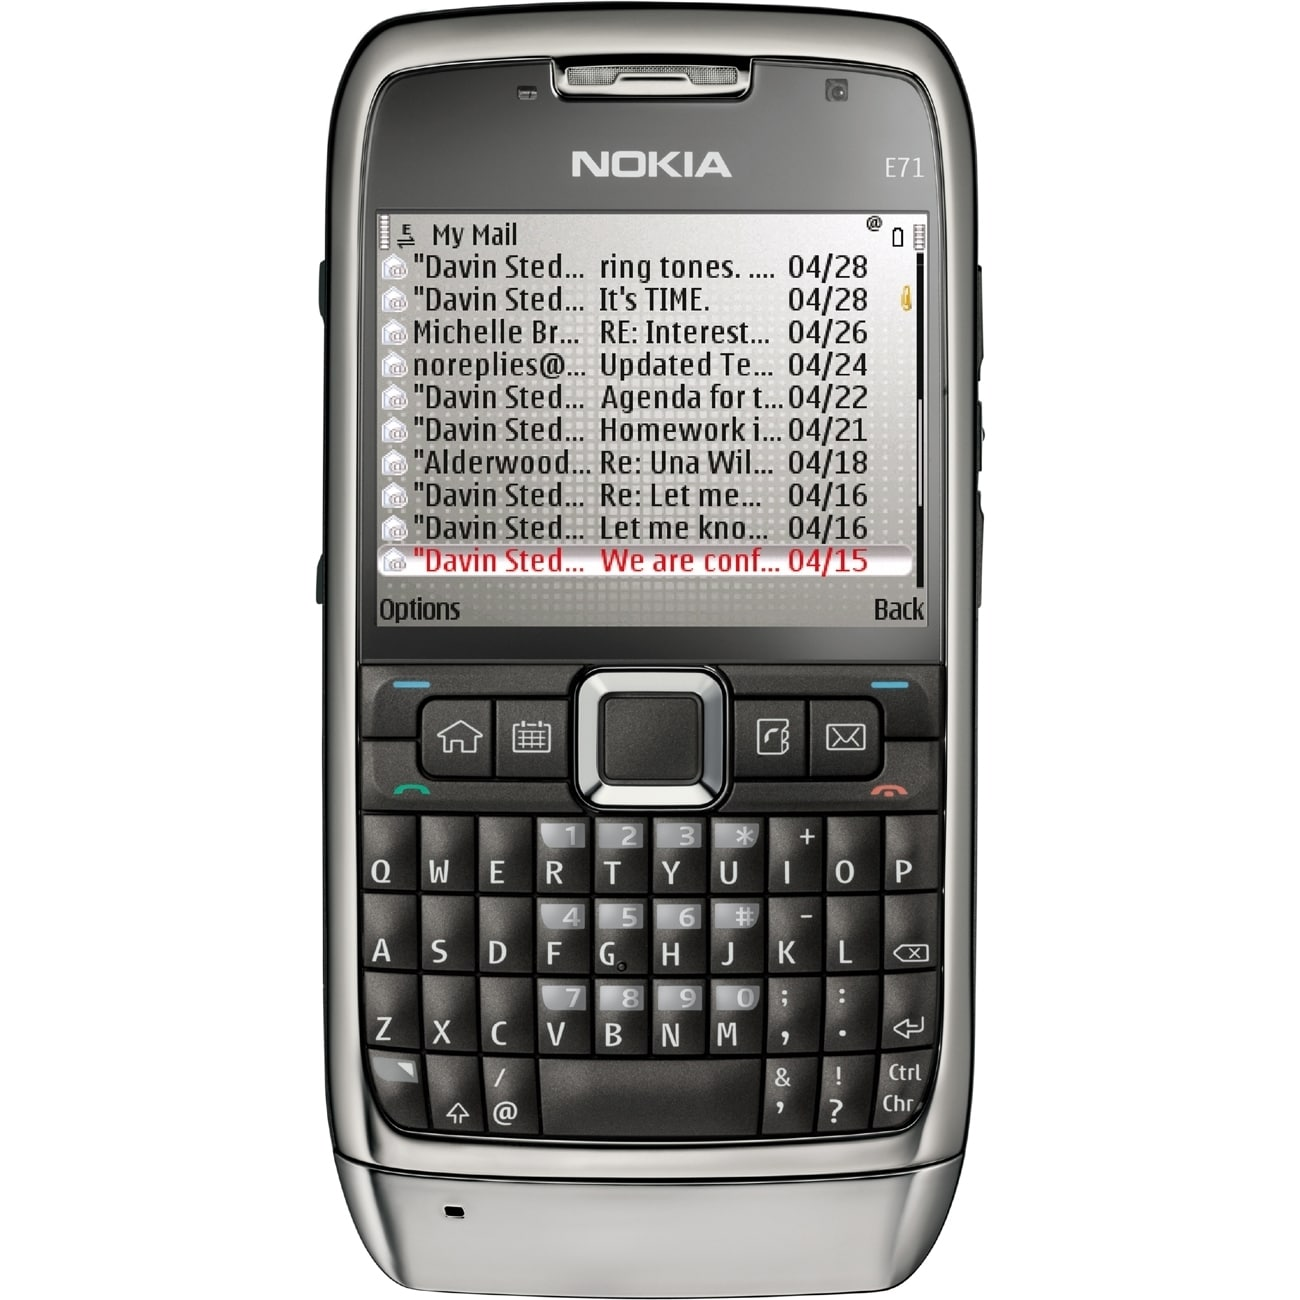 Nokia E71 Smartphone - Wireless LAN - 3G - Bar - Steel Gray